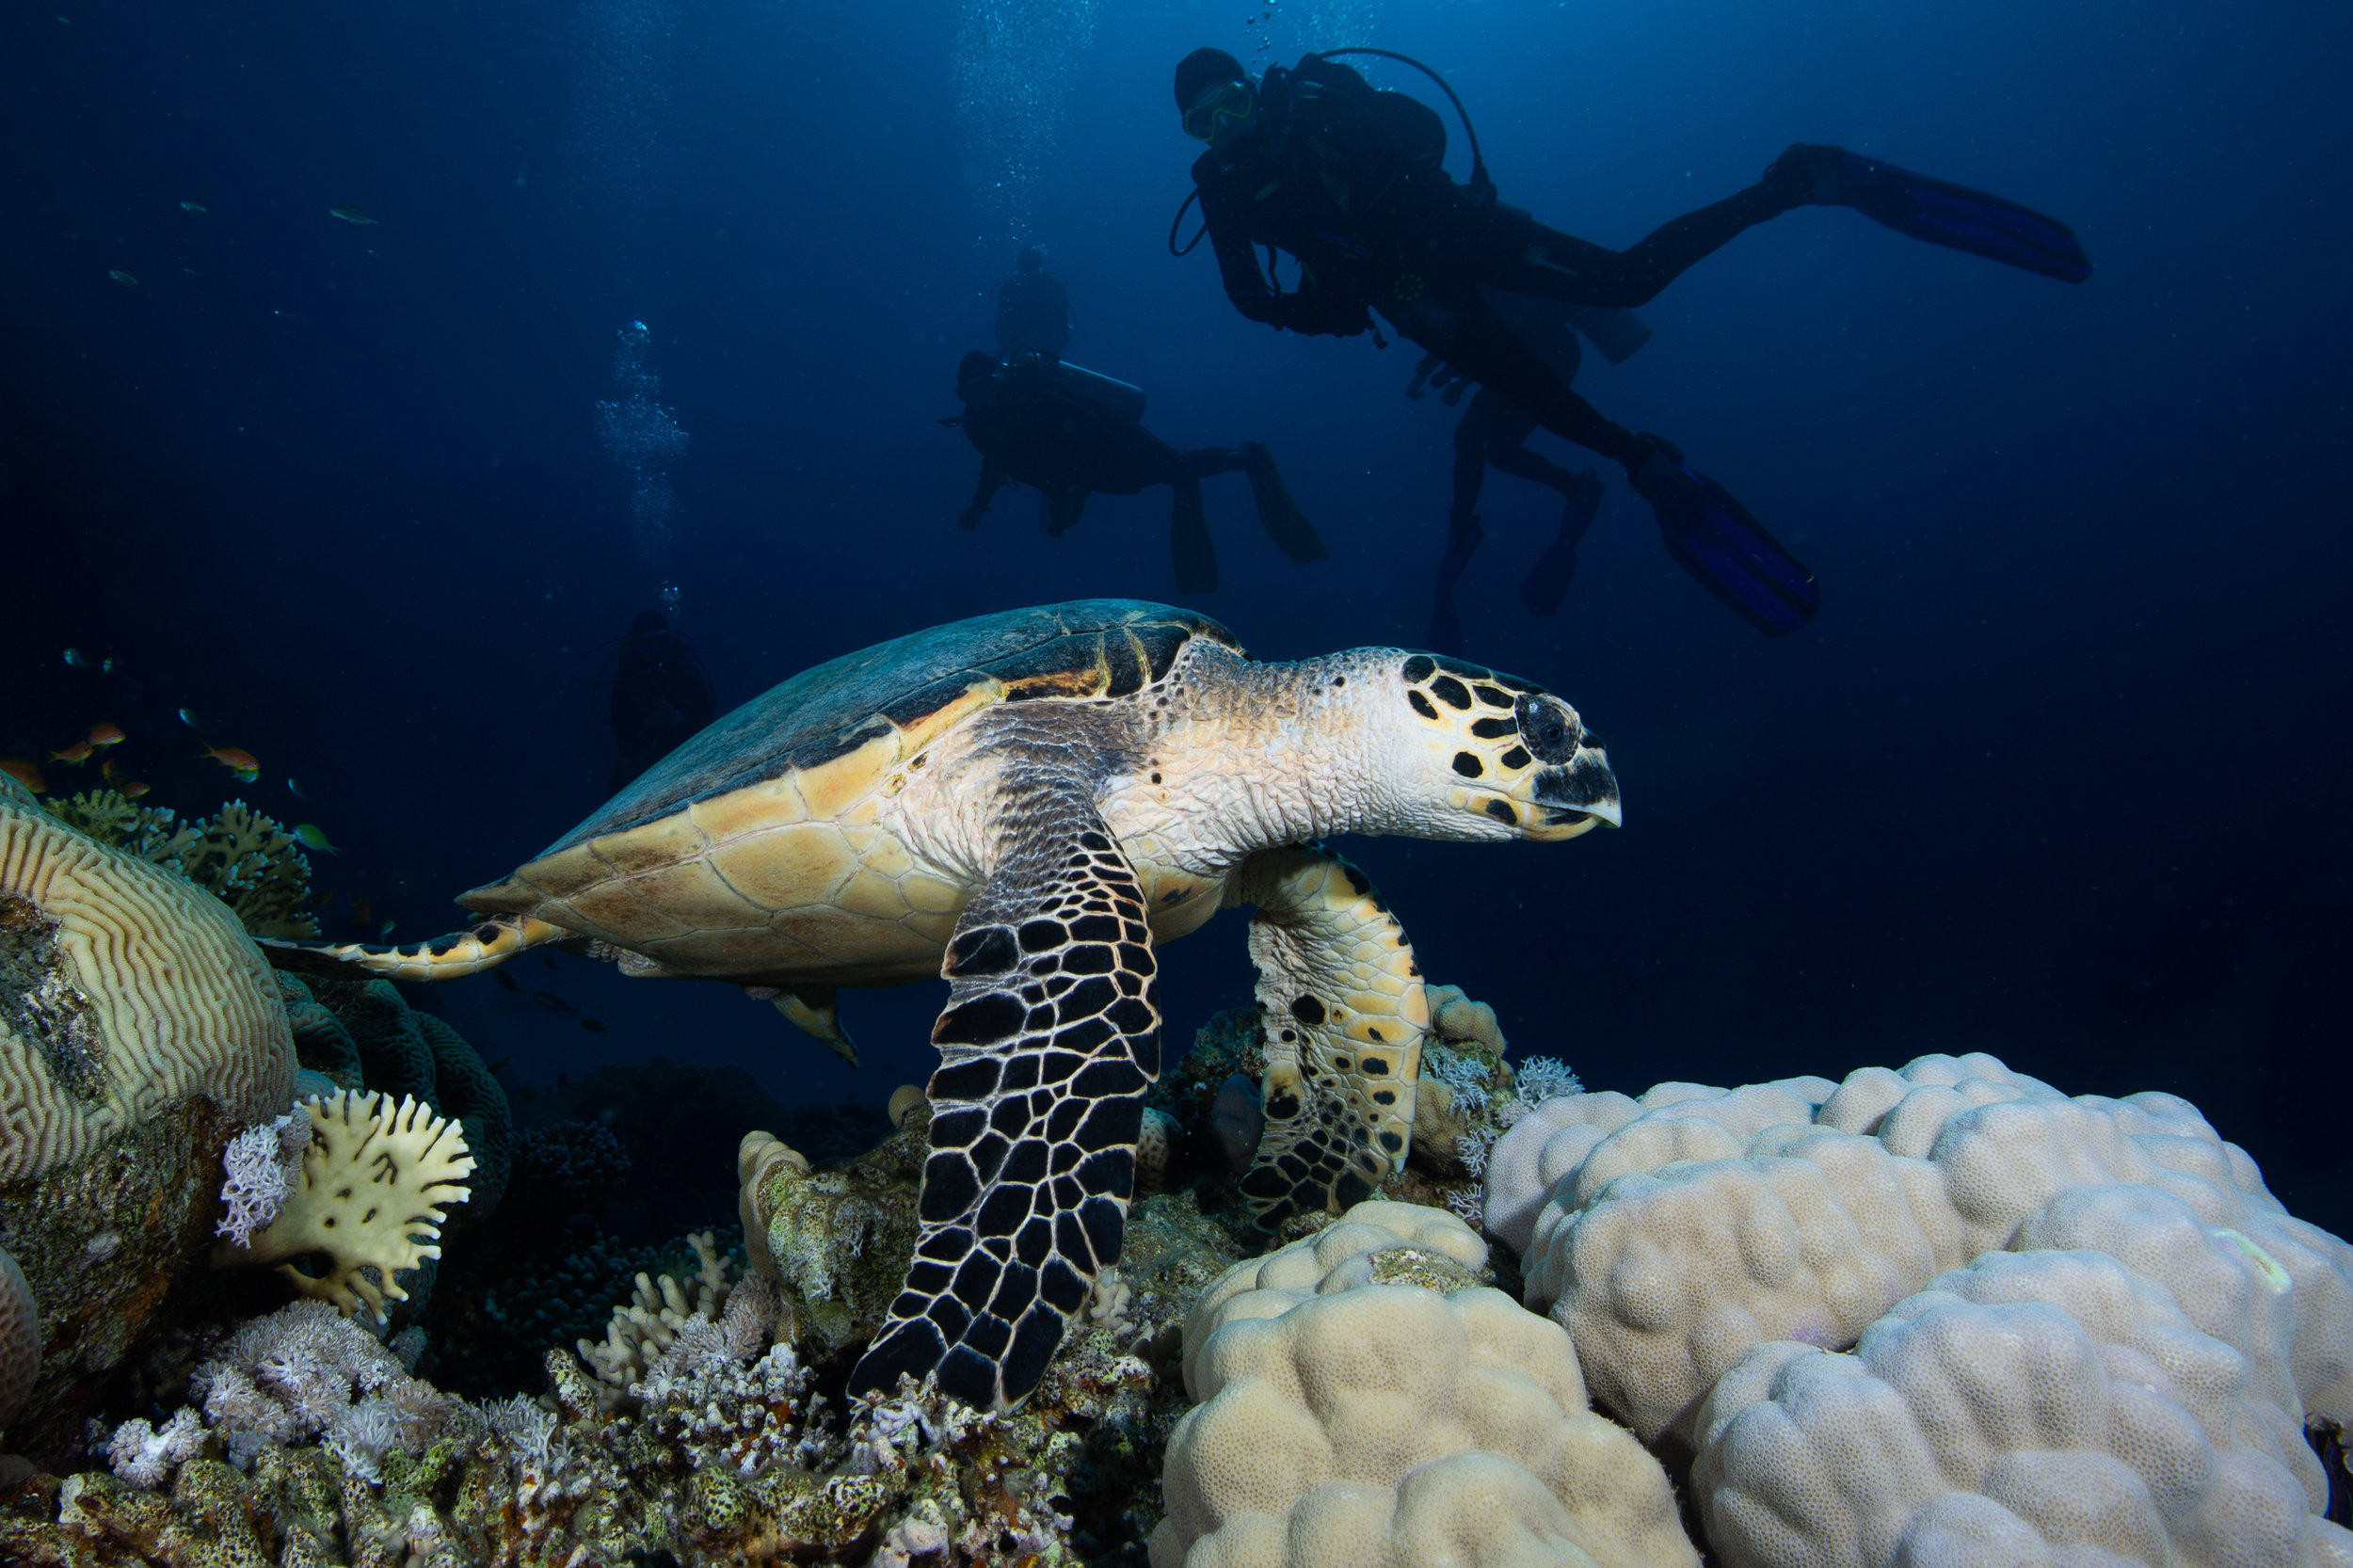 Hawksbill Turtle, Sharm El Sheikh, Red Sea - Egypt - Wild Earth Expeditions